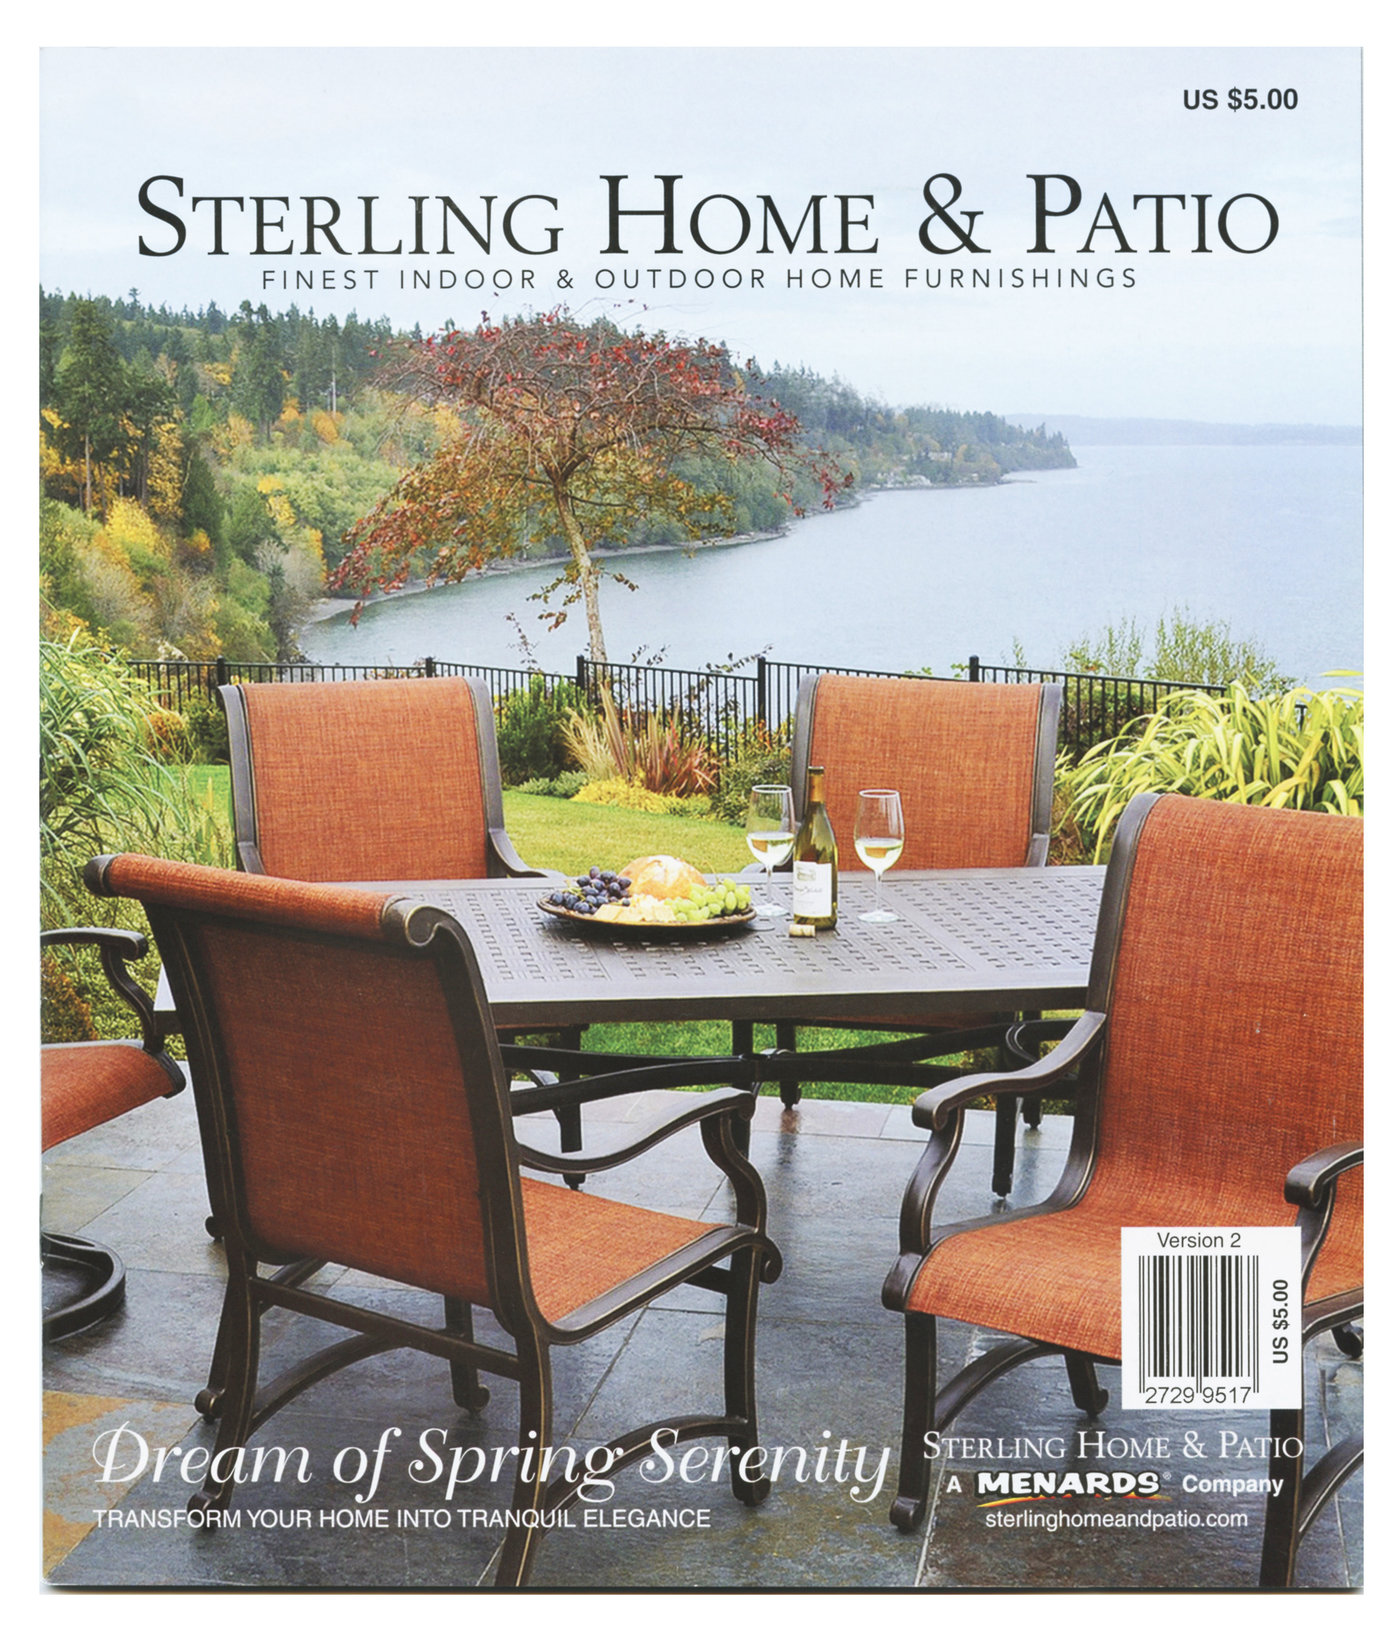 Sterling Home & Patio Catalogs Flyers Artwork & Website Menards